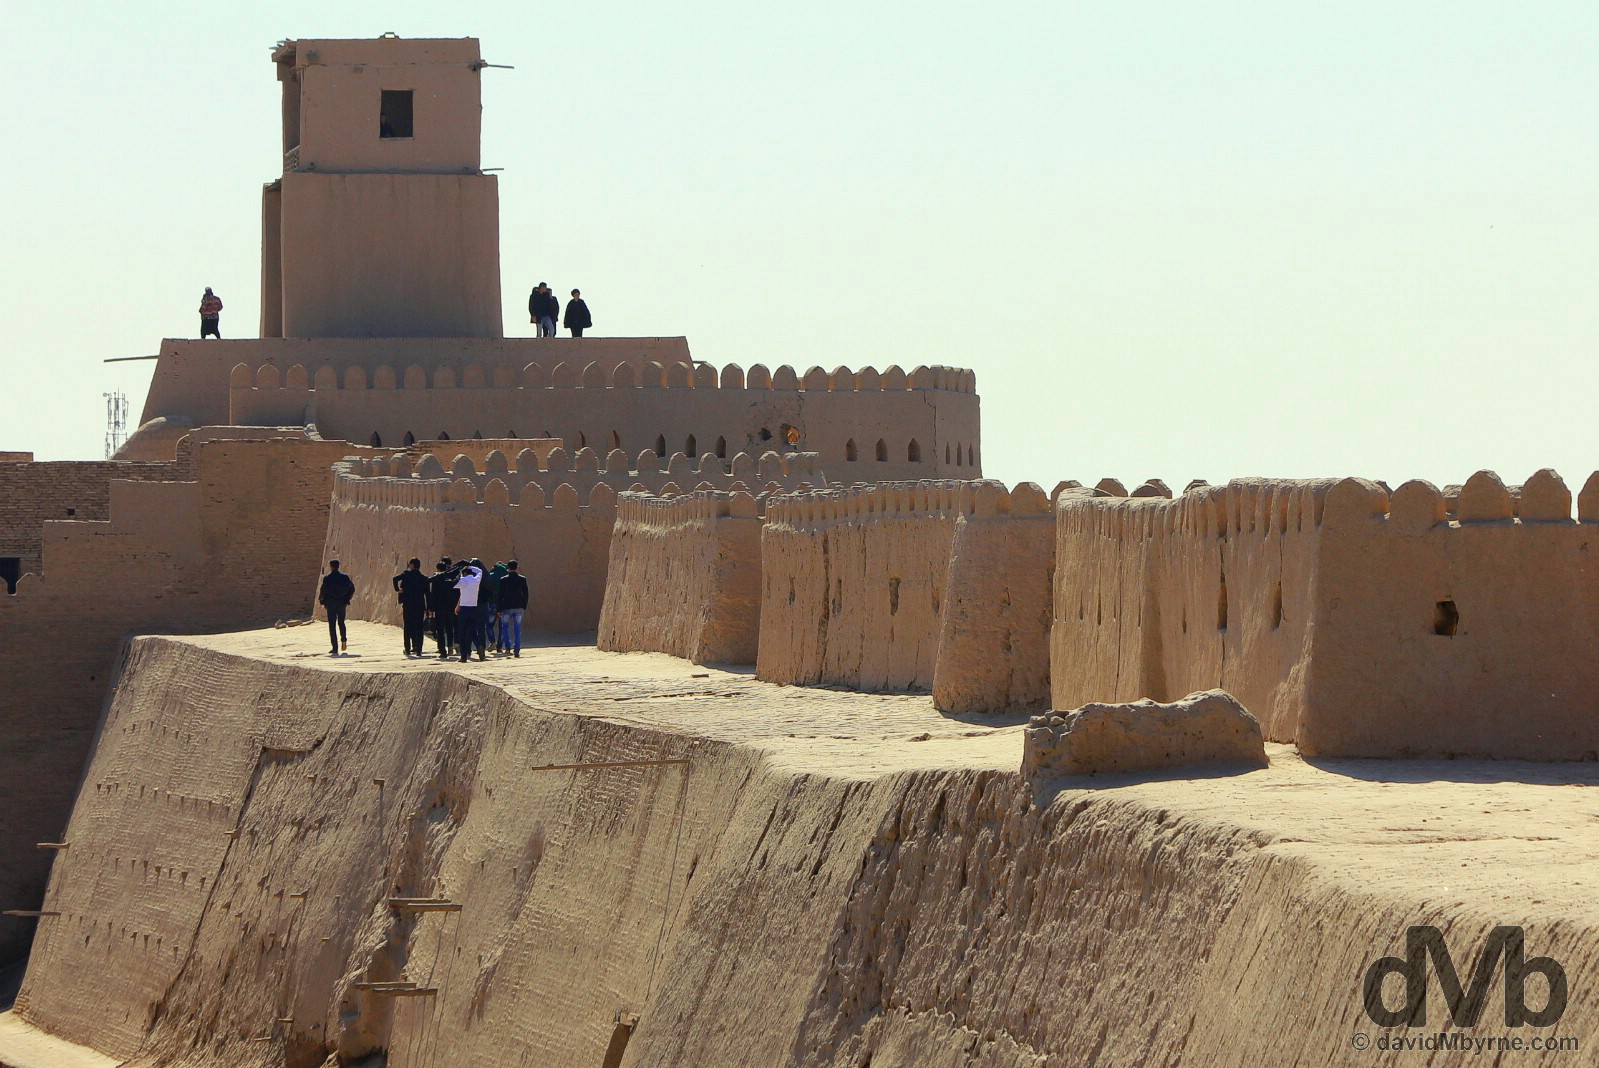 Walking atop the city wall towards the Kuhna Ark Watchtower in Khiva, Uzbekistan. March 14, 2015.